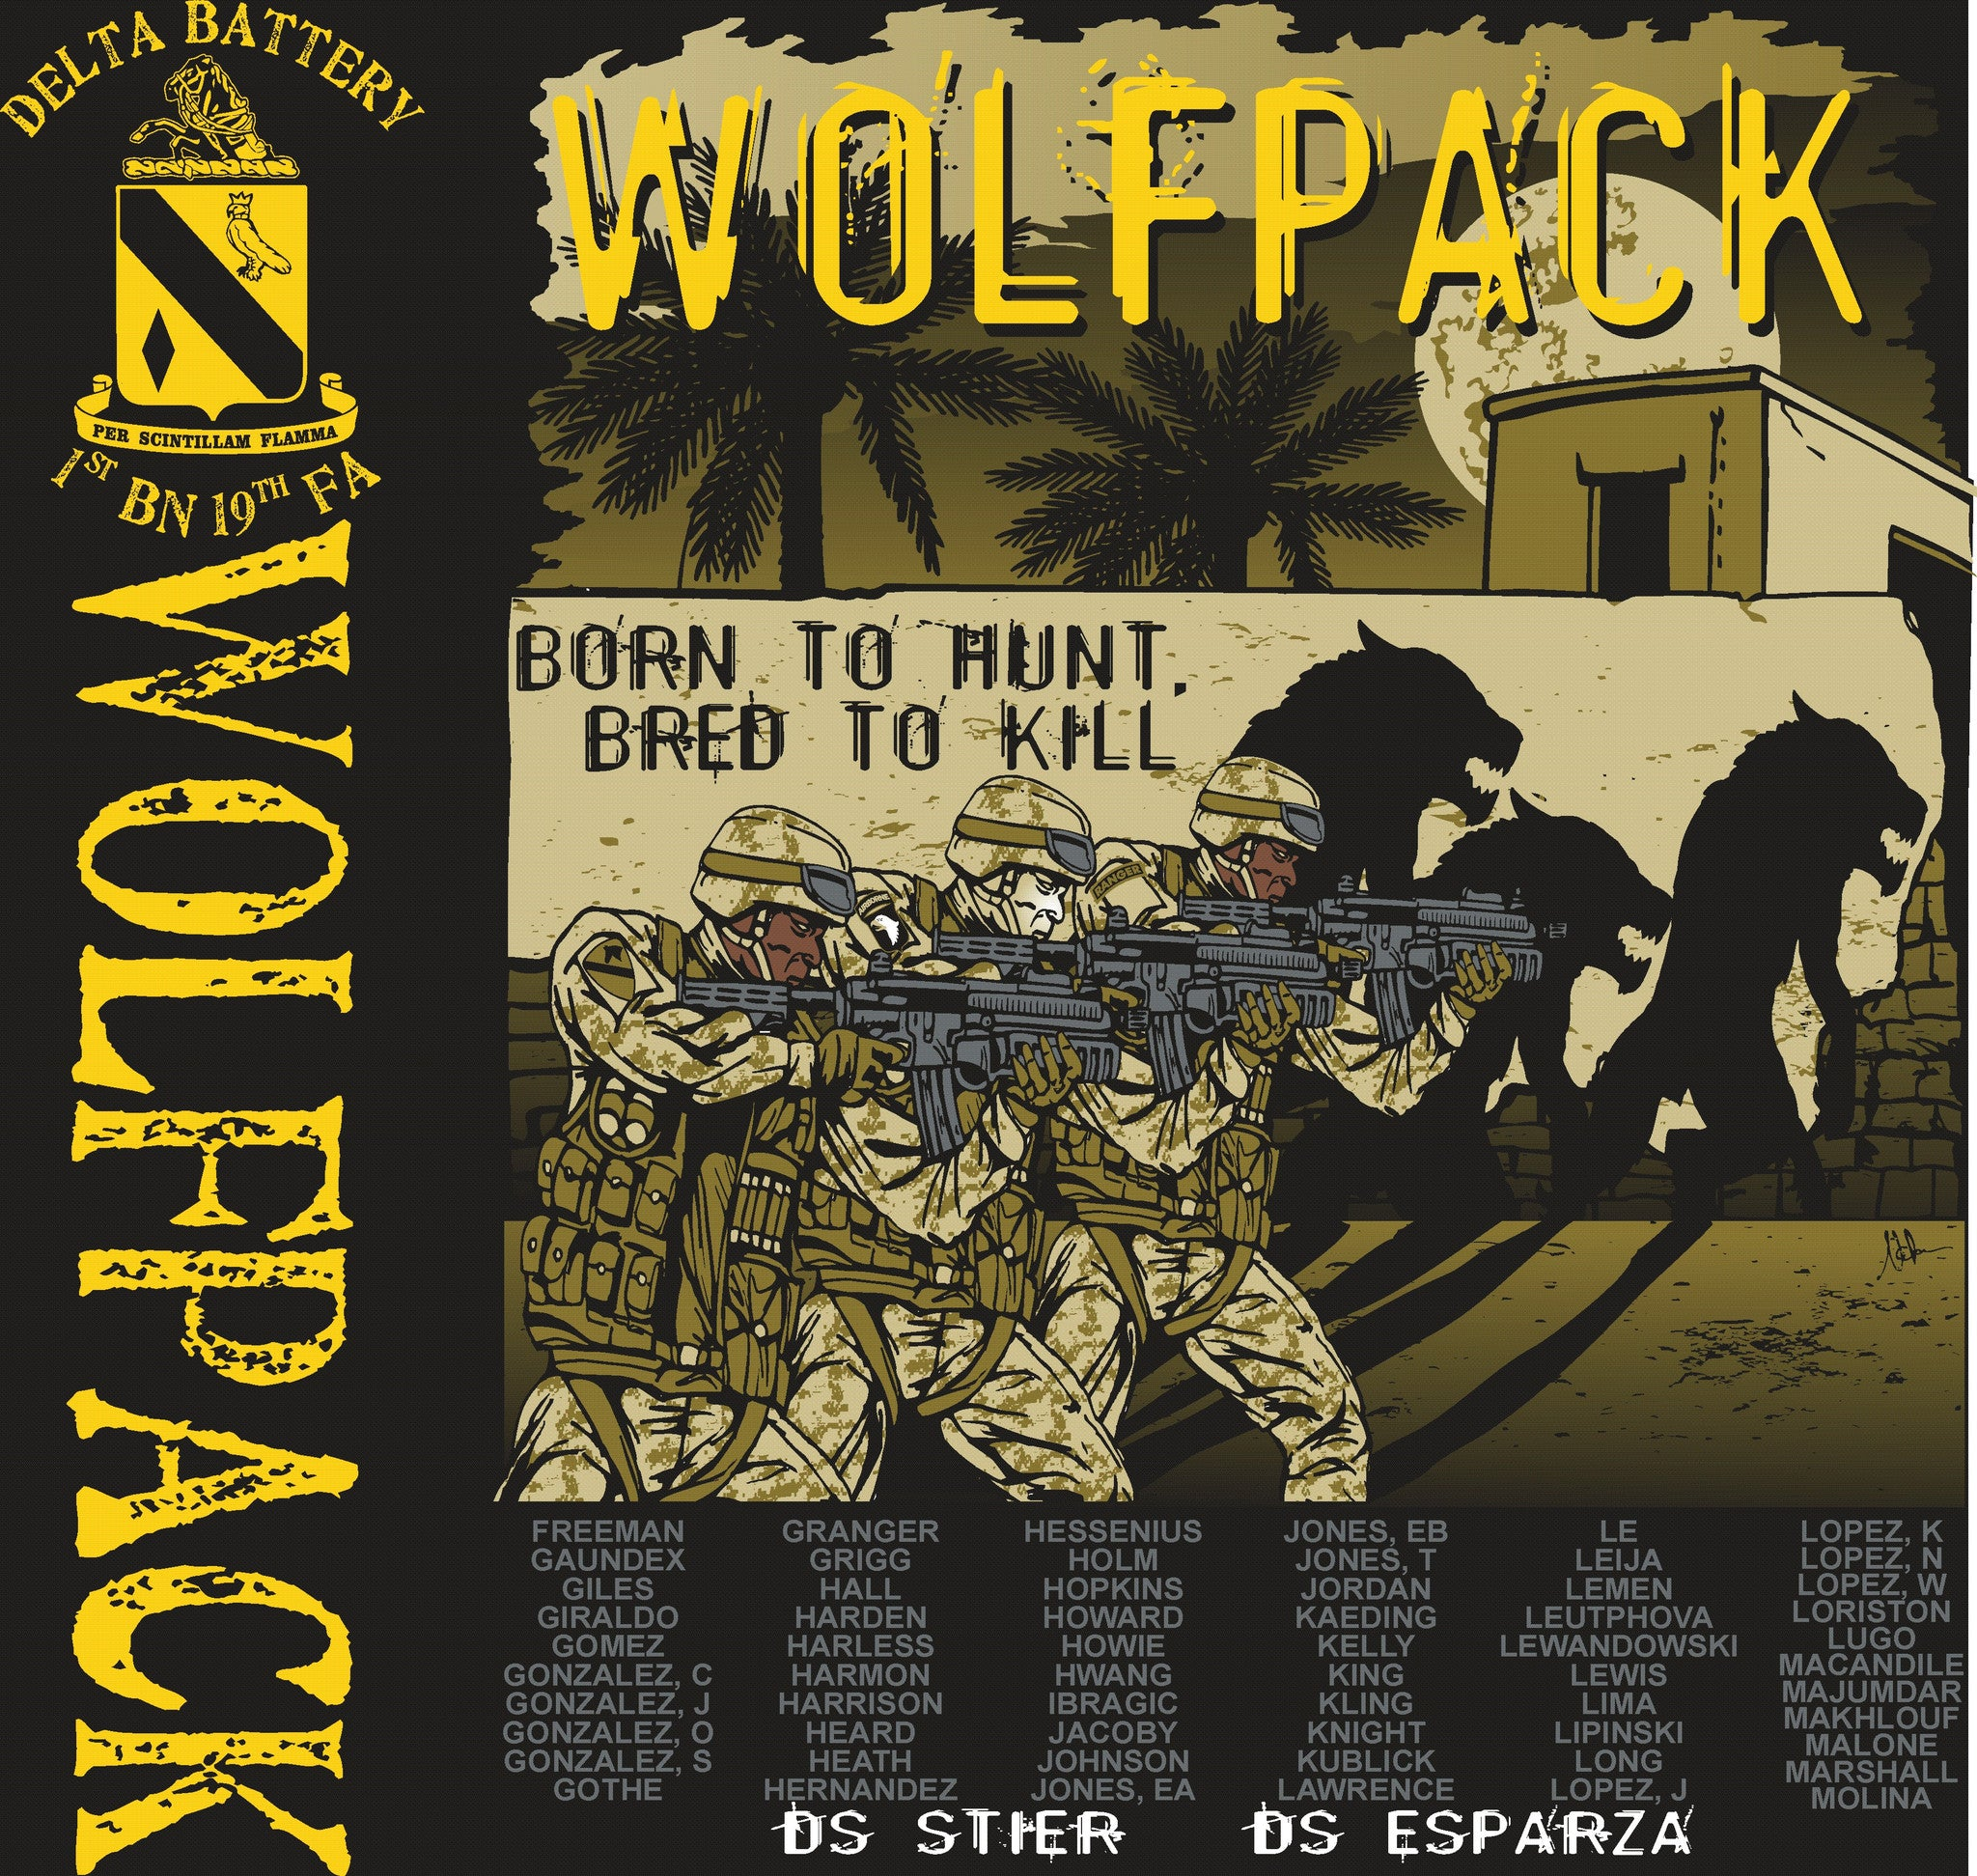 Platoon Shirts Delta 1st 19th WOLFPACK OCT 2015